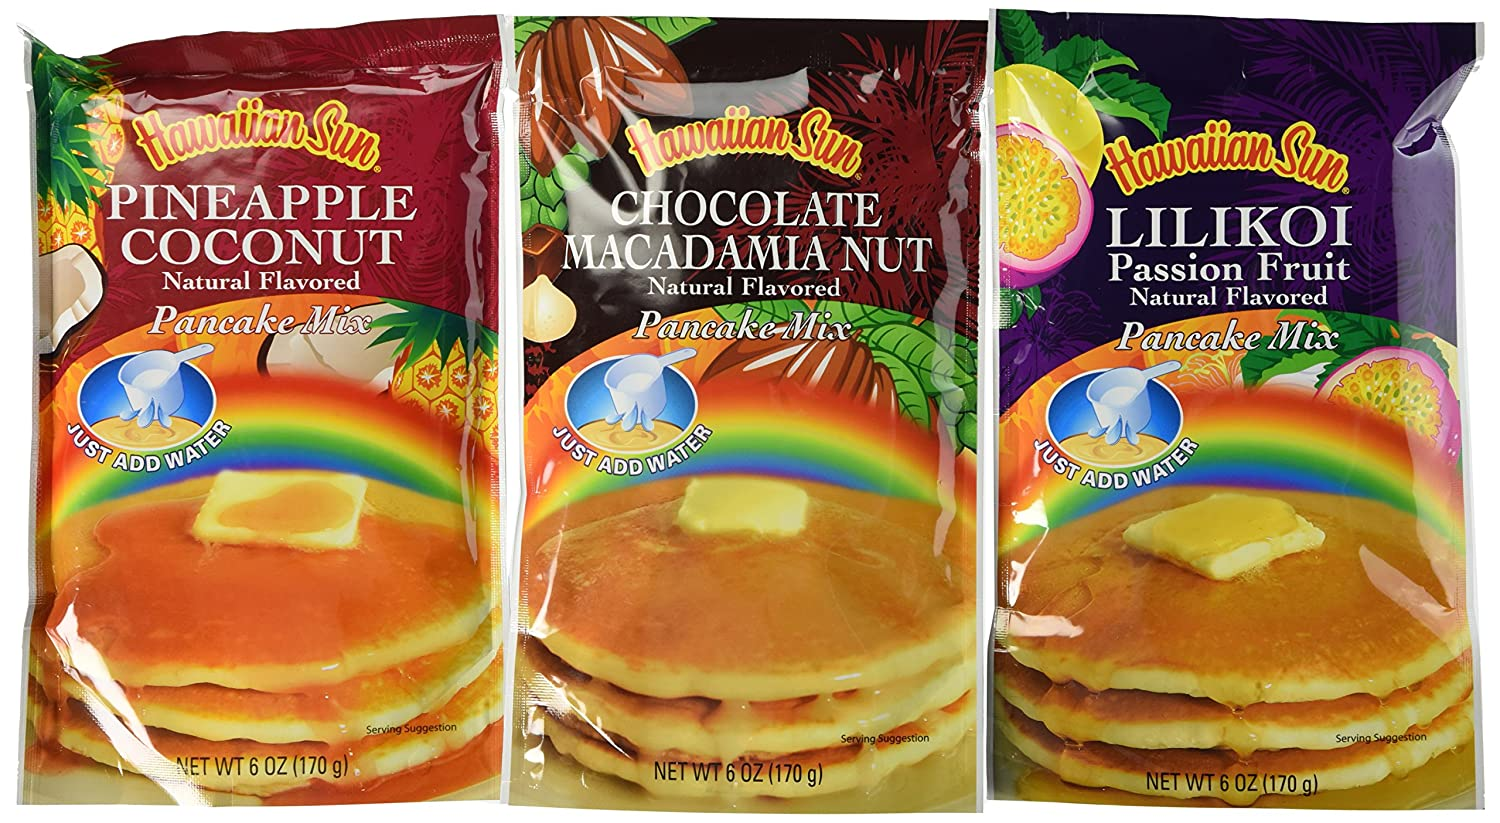 Hawaiian Sun Pancake Mix Assortment 6-ounce (Pack of 3)